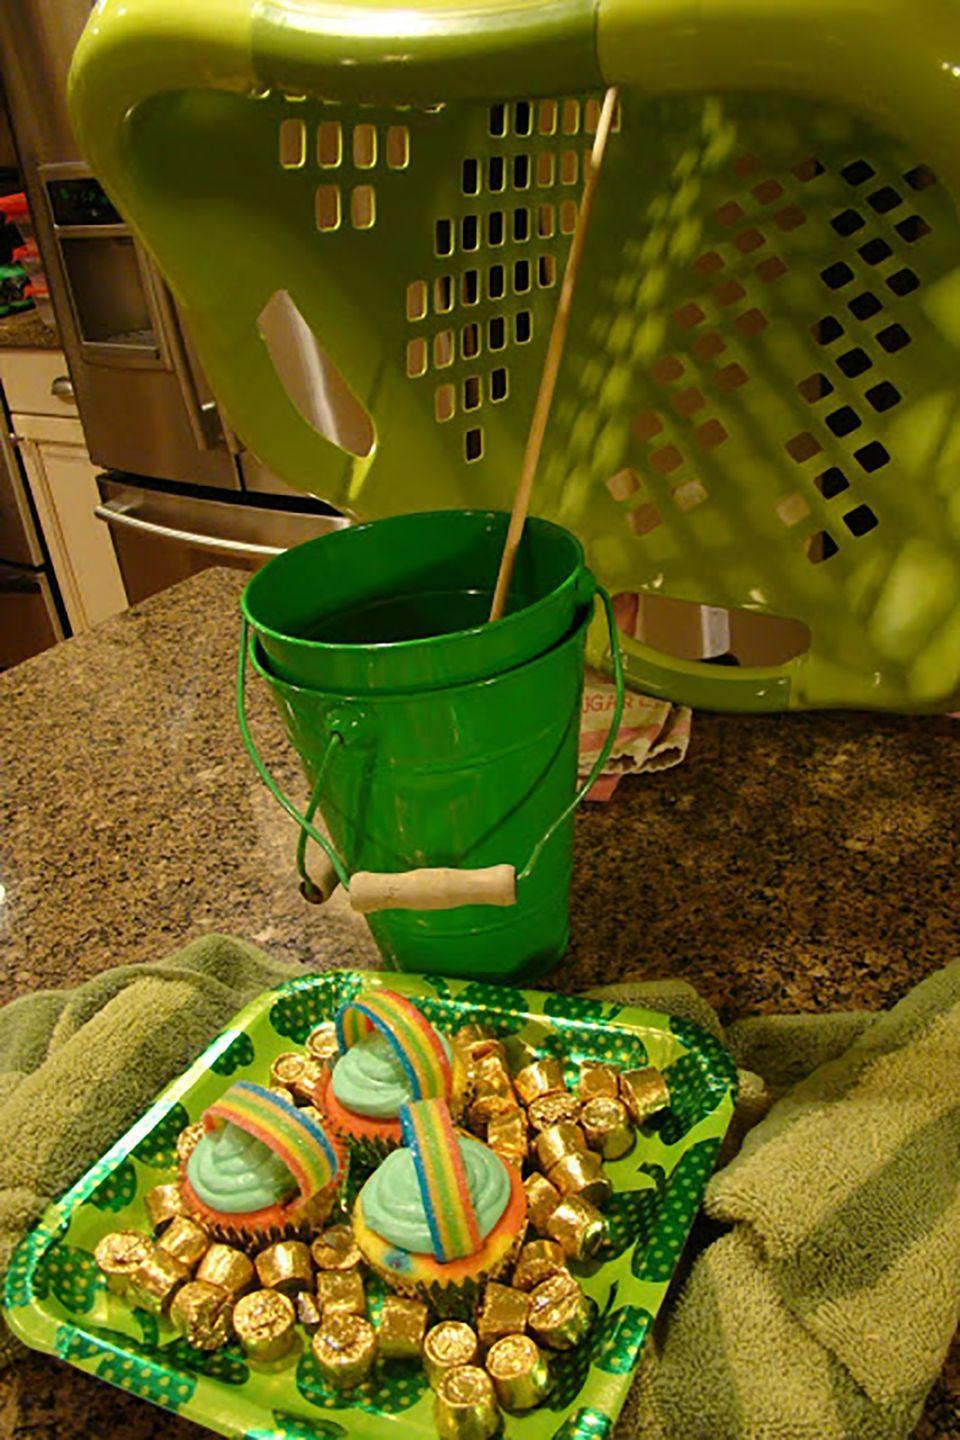 """<p>Have the kids help set up this trap—maybe this year you'll catch one of those pesky leprechauns!</p><p><strong>Get the tutorial at <a href=""""http://befickle.blogspot.com/2011/03/how-we-celebrate-st-pattys.html"""" rel=""""nofollow noopener"""" target=""""_blank"""" data-ylk=""""slk:The Fickle Pickle"""" class=""""link rapid-noclick-resp"""">The Fickle Pickle</a>. </strong></p>"""